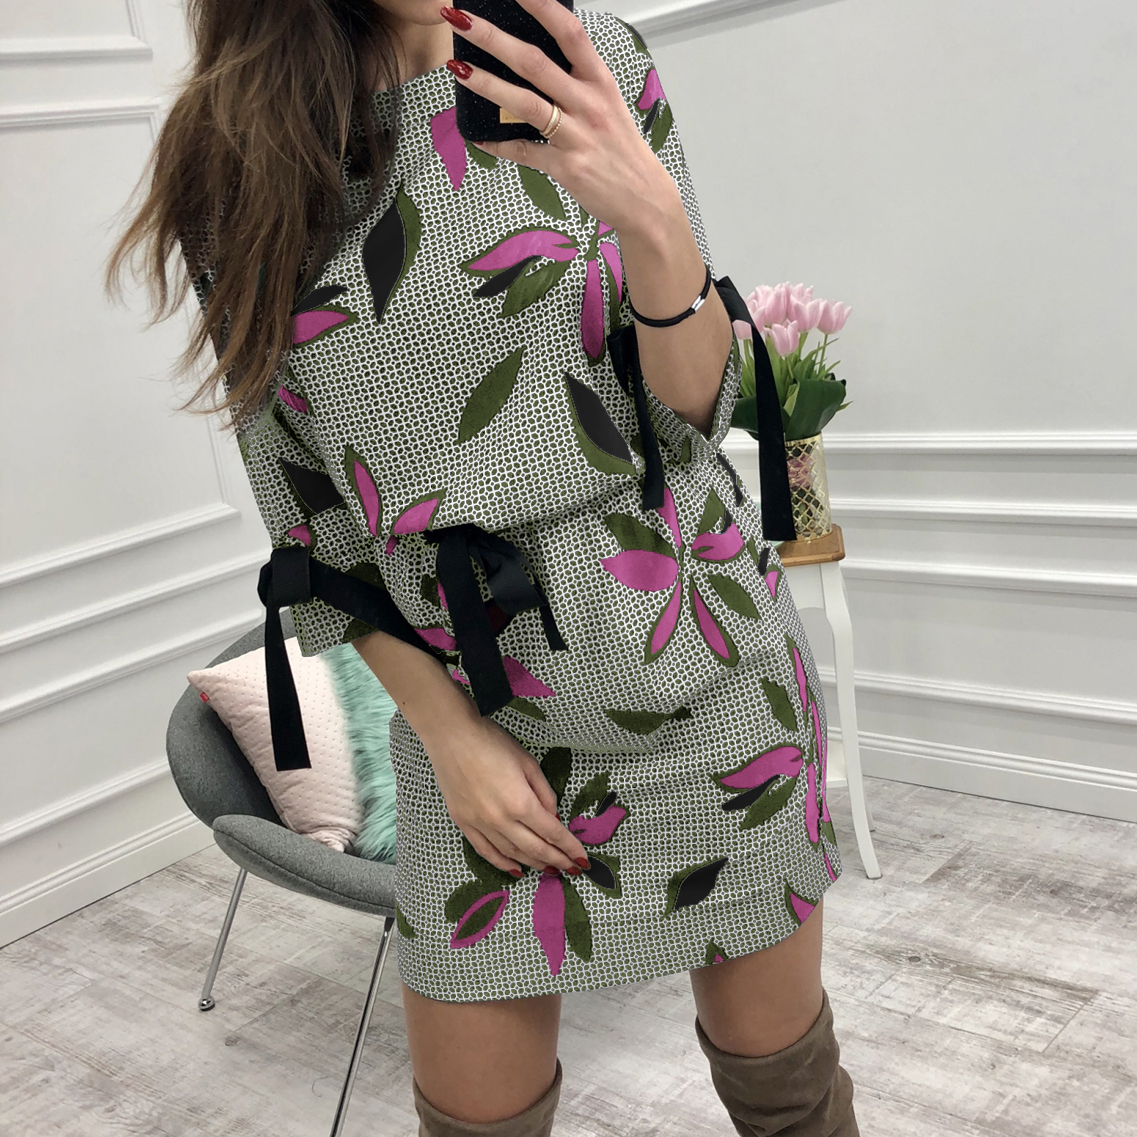 Eyes 2018 Summer Women Floral Casual Beach Hot Sexy Vestidos Plus Size Backless Bow Fashion Dresses Women's Clothing